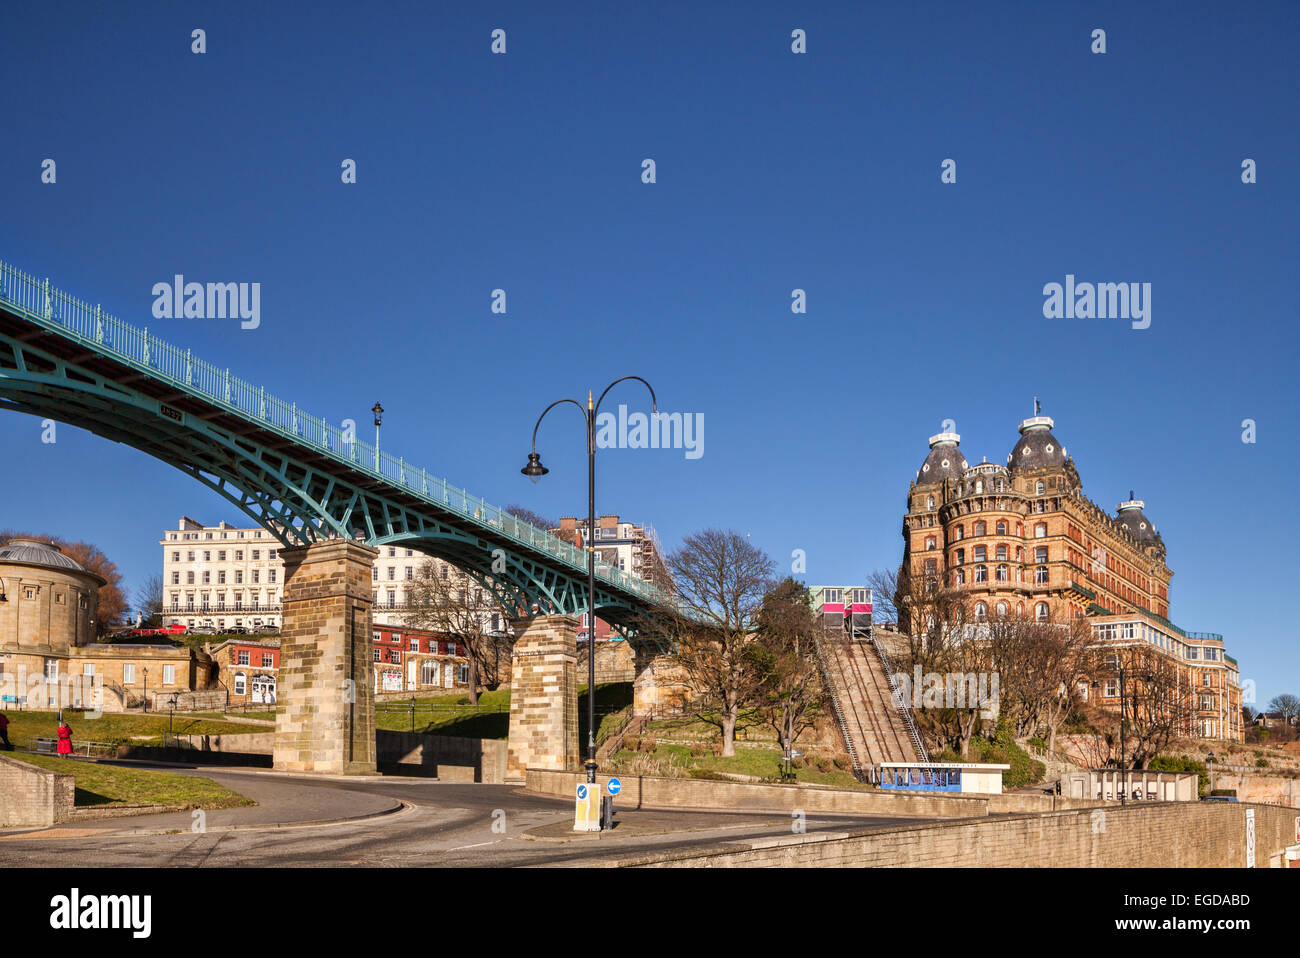 The Grand Hotel, Scarborough, North Yorkshire, England, UK, a Grade 2 listed building, and the Spa Bridge, on a - Stock Image